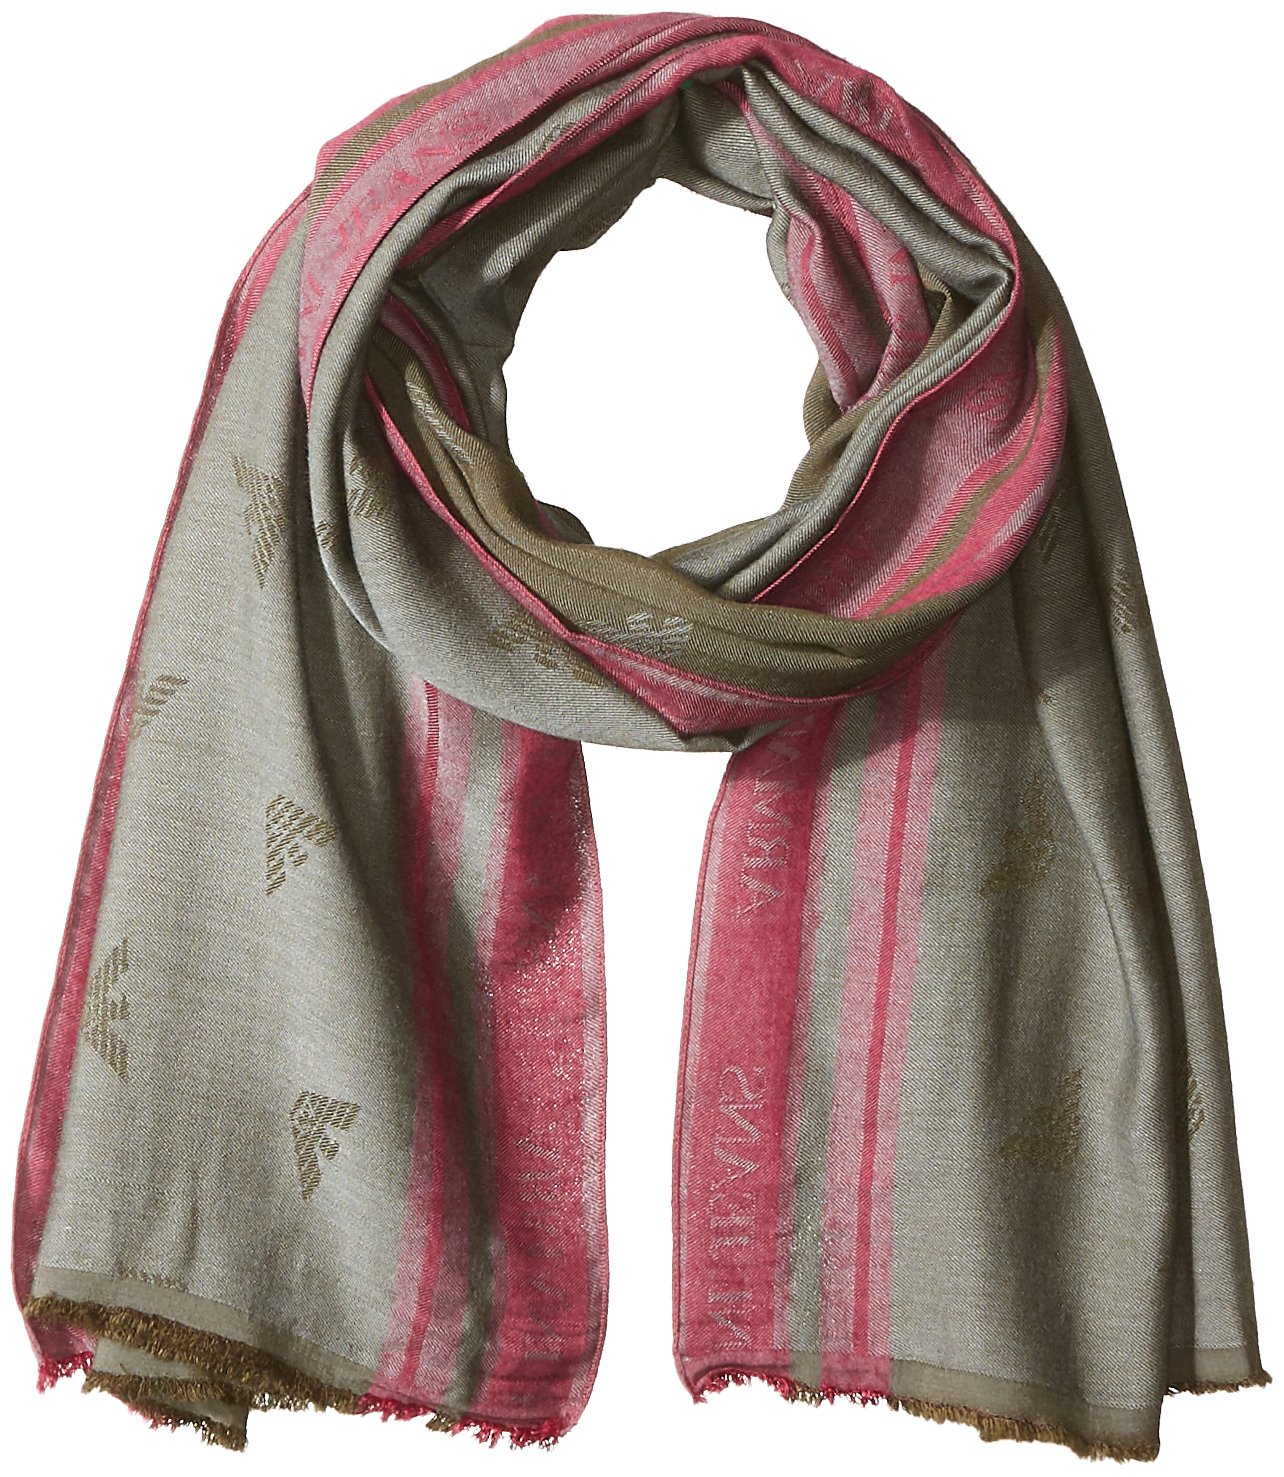 Armani Jeans Men's Viscose Fabric Scarf With Eagle Logo, green, ONE SIZE